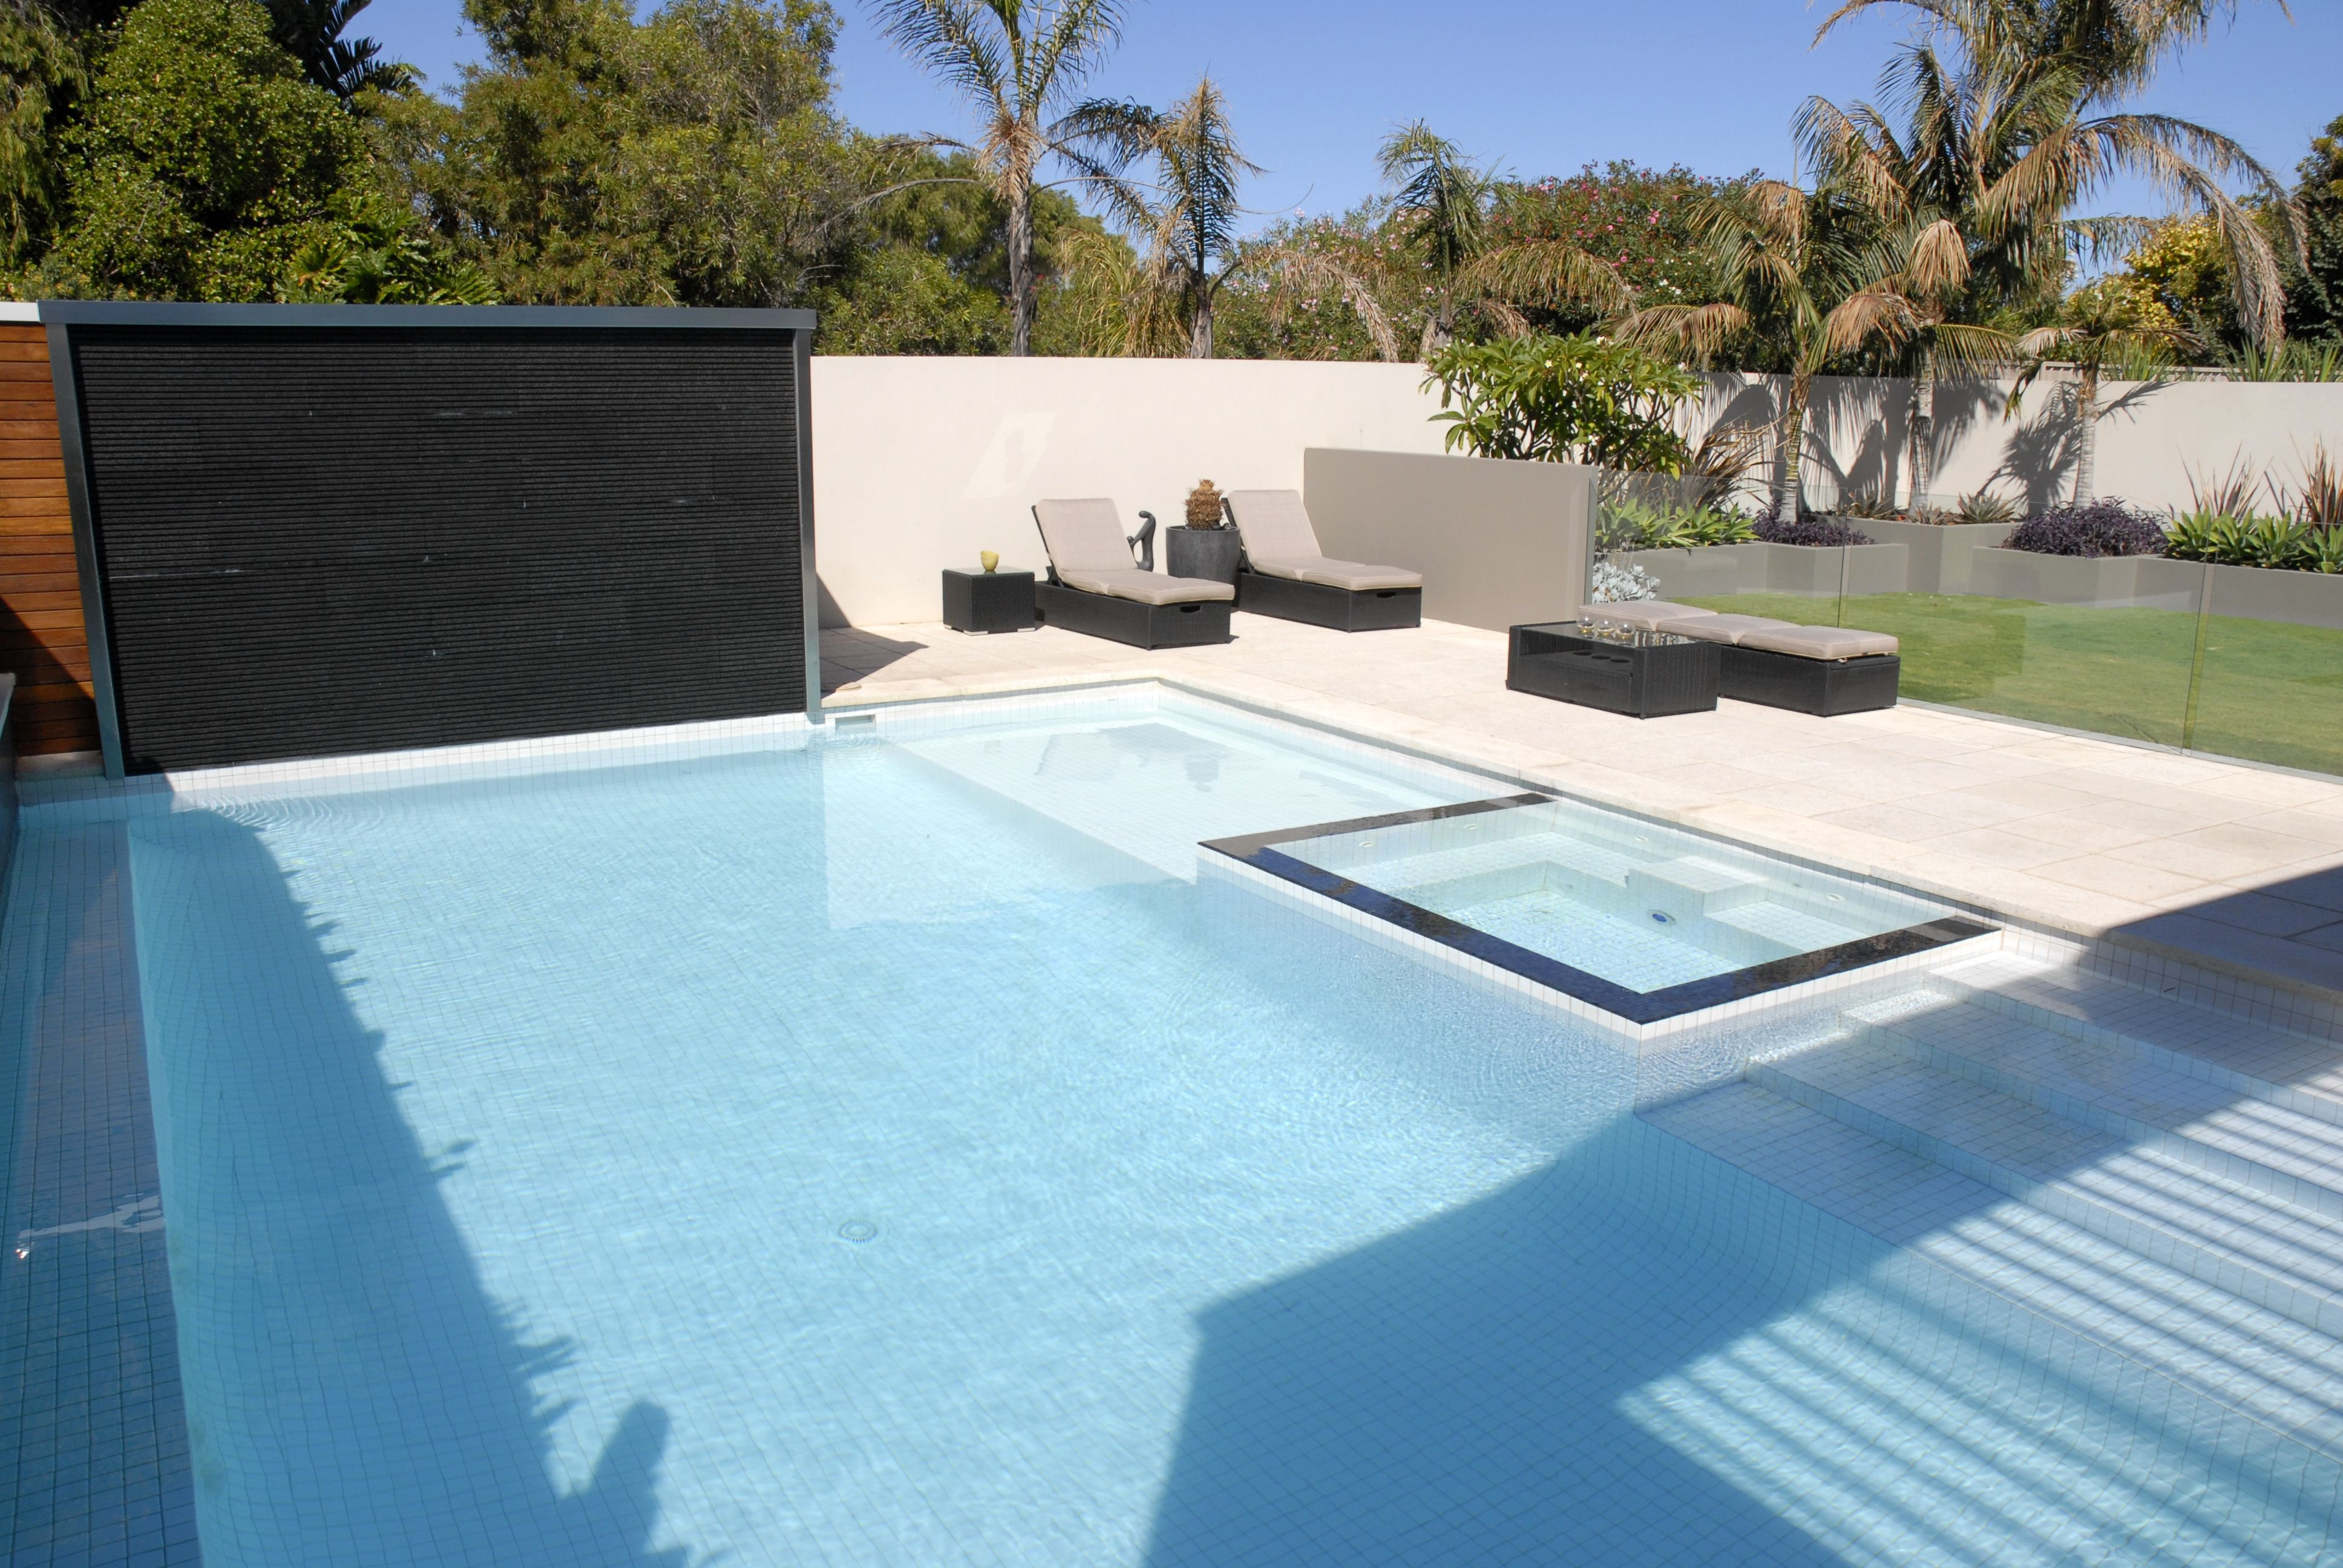 22s 6110 white gloss 58x58mm mosaic pool tile swimming pool